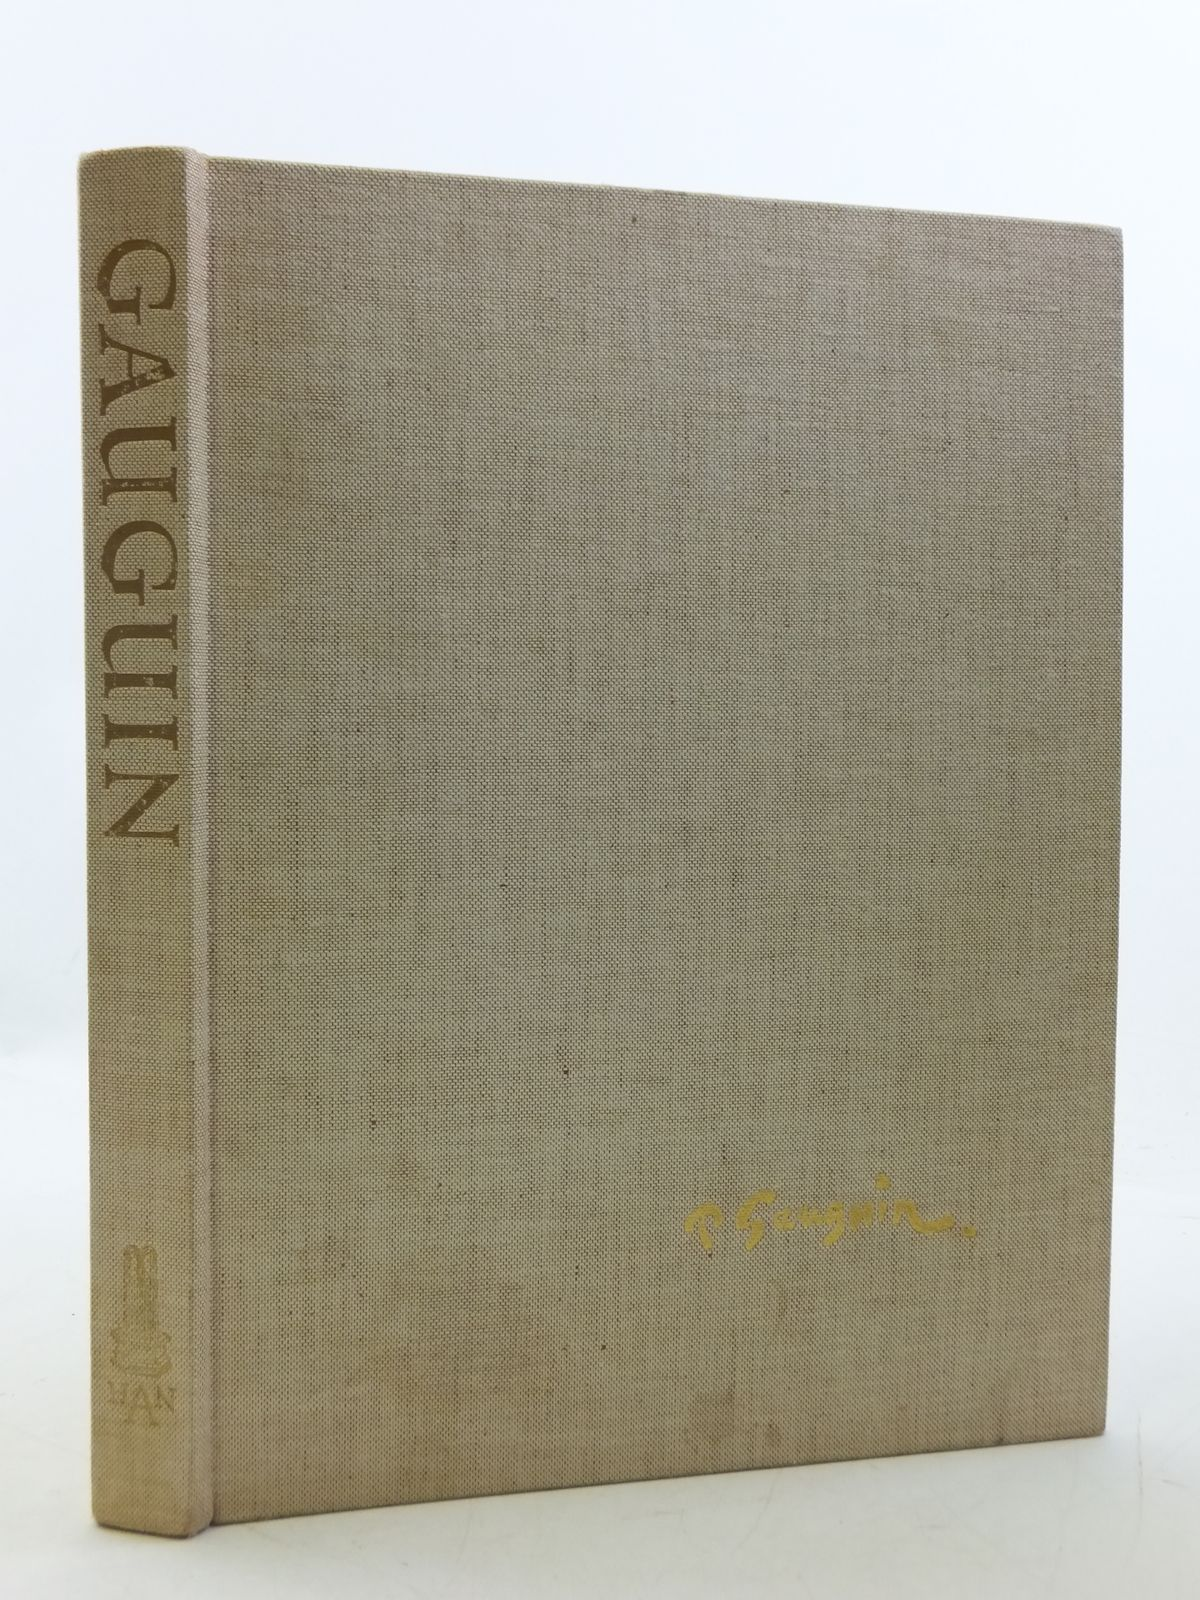 Photo of PAUL GAUGUIN written by Goldwater, Robert published by The Library Of Great Painters (STOCK CODE: 1605663)  for sale by Stella & Rose's Books